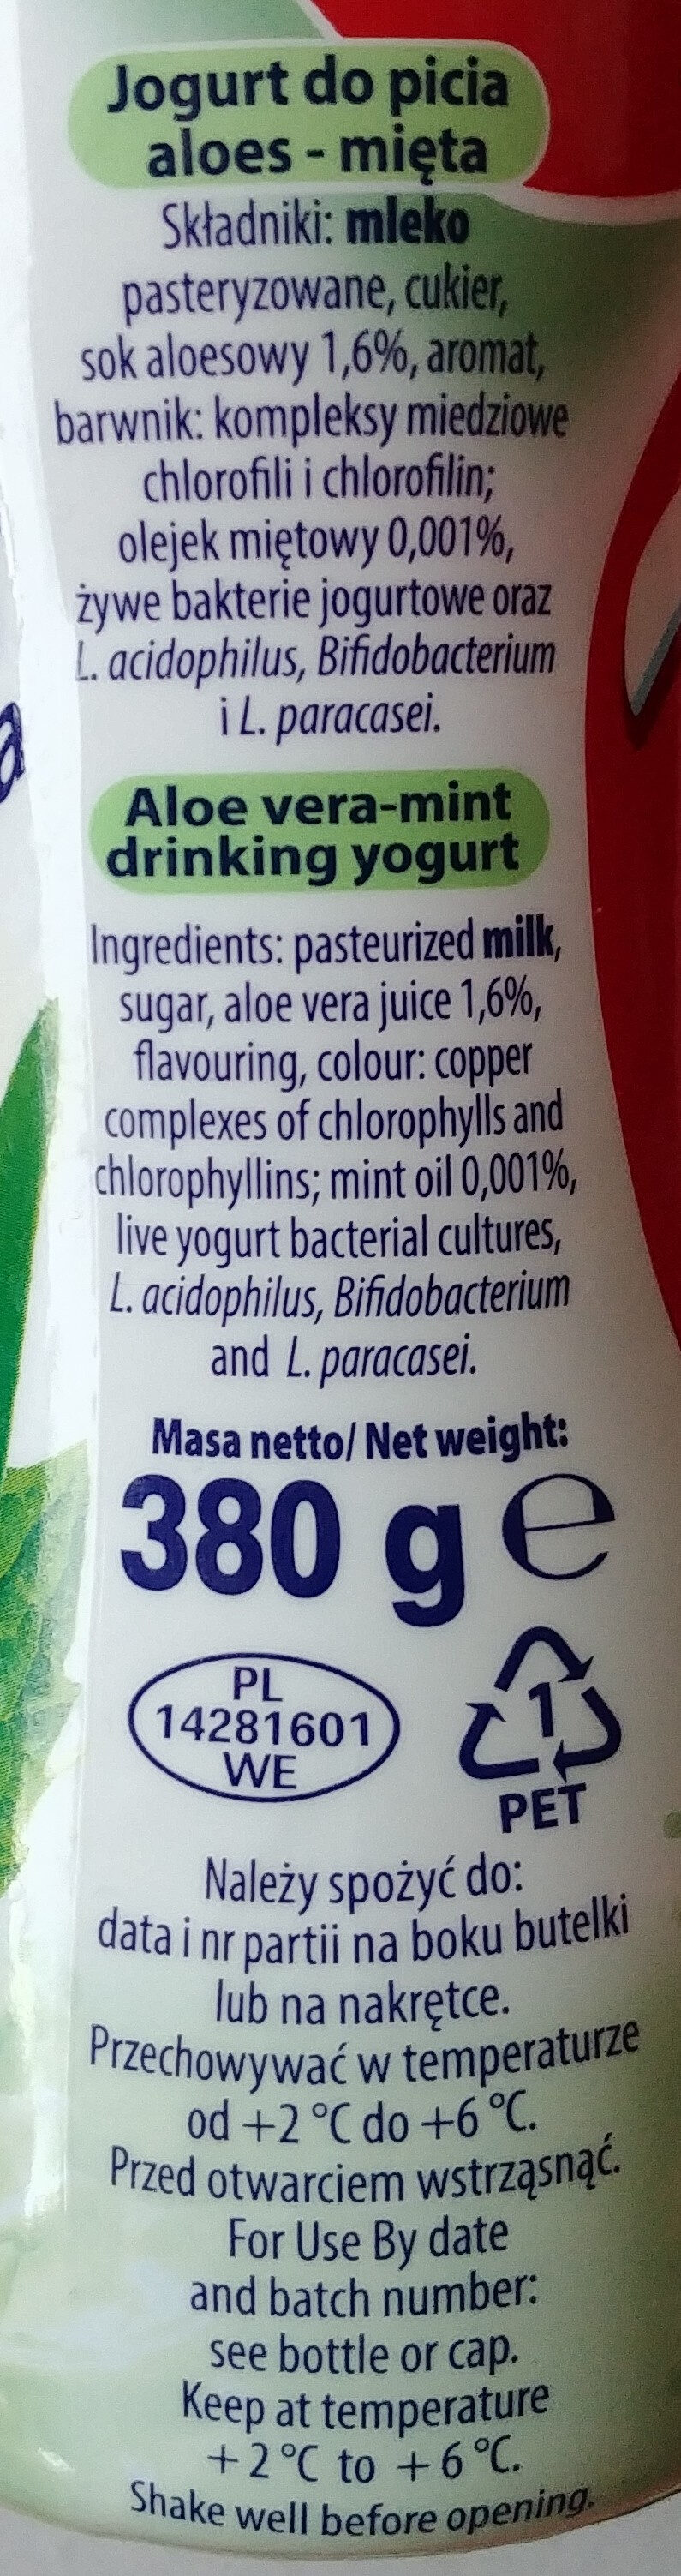 Jogurt do picia aloes - mięta. - Ingredients